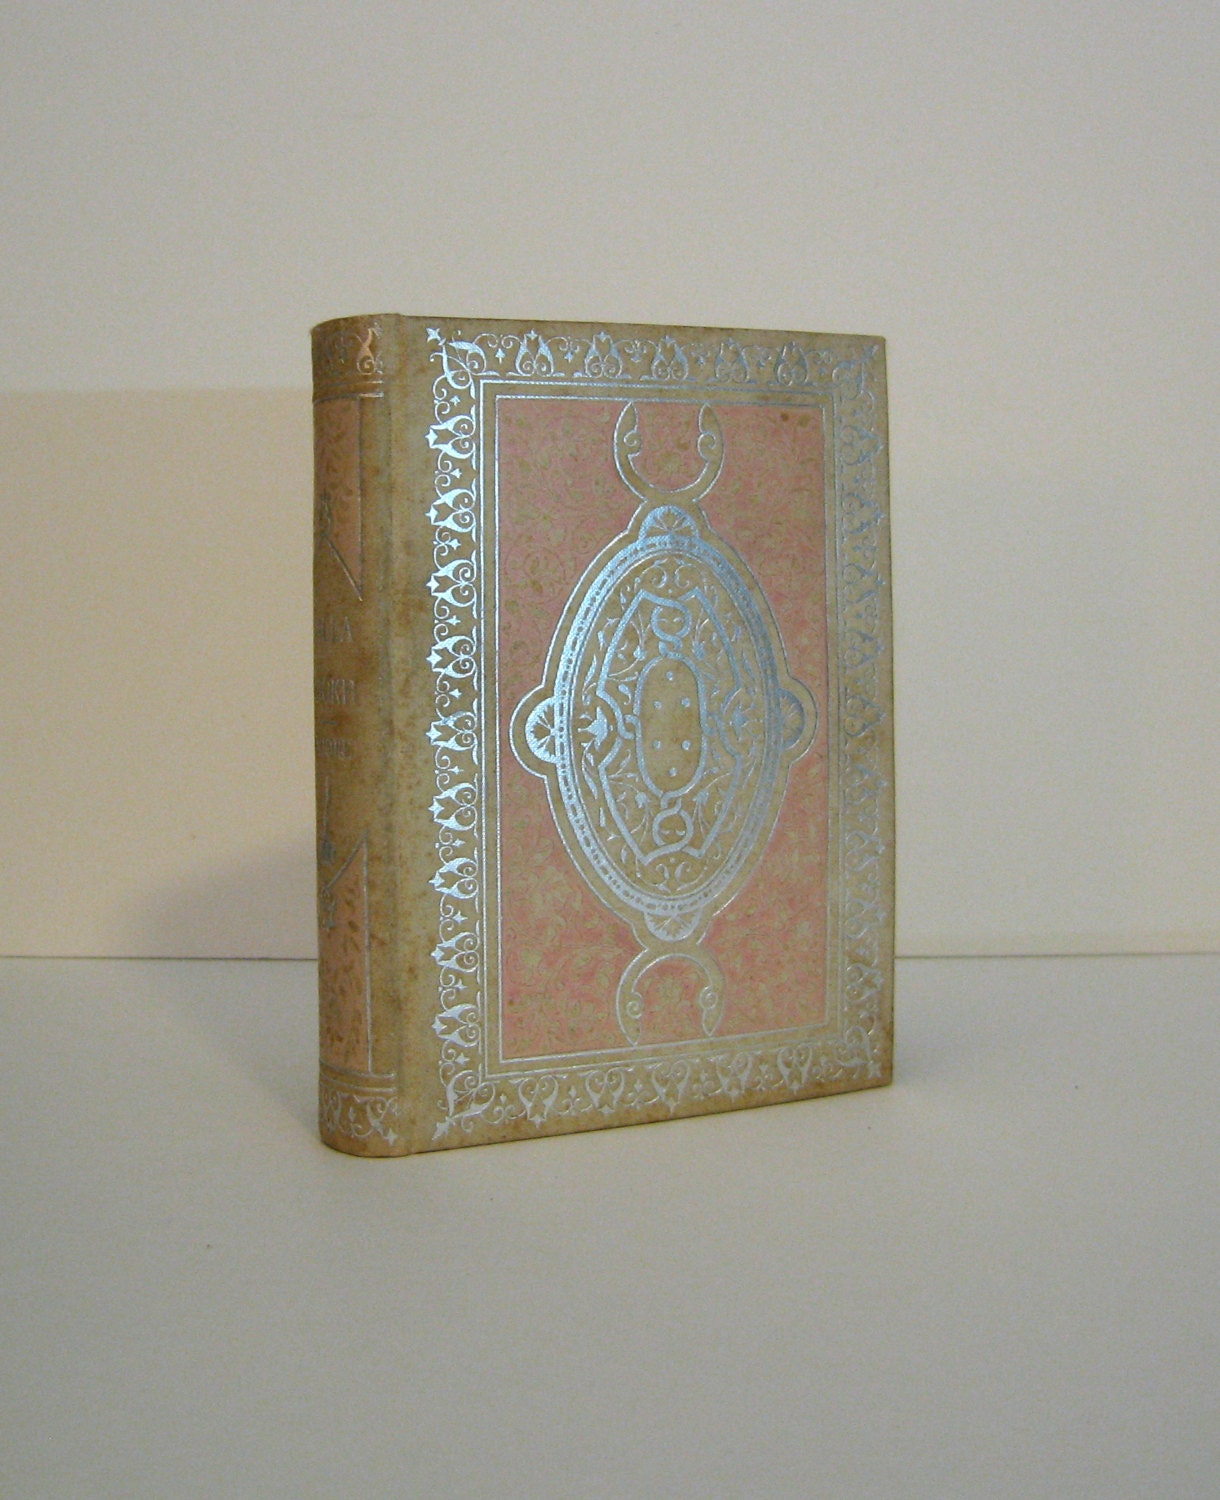 Lalla Rookh by Thomas Moore Small Antique Victorian Era Book from circa 1898 Bound with Silver and Pink Design Published in New York - ProfessorBooknoodle